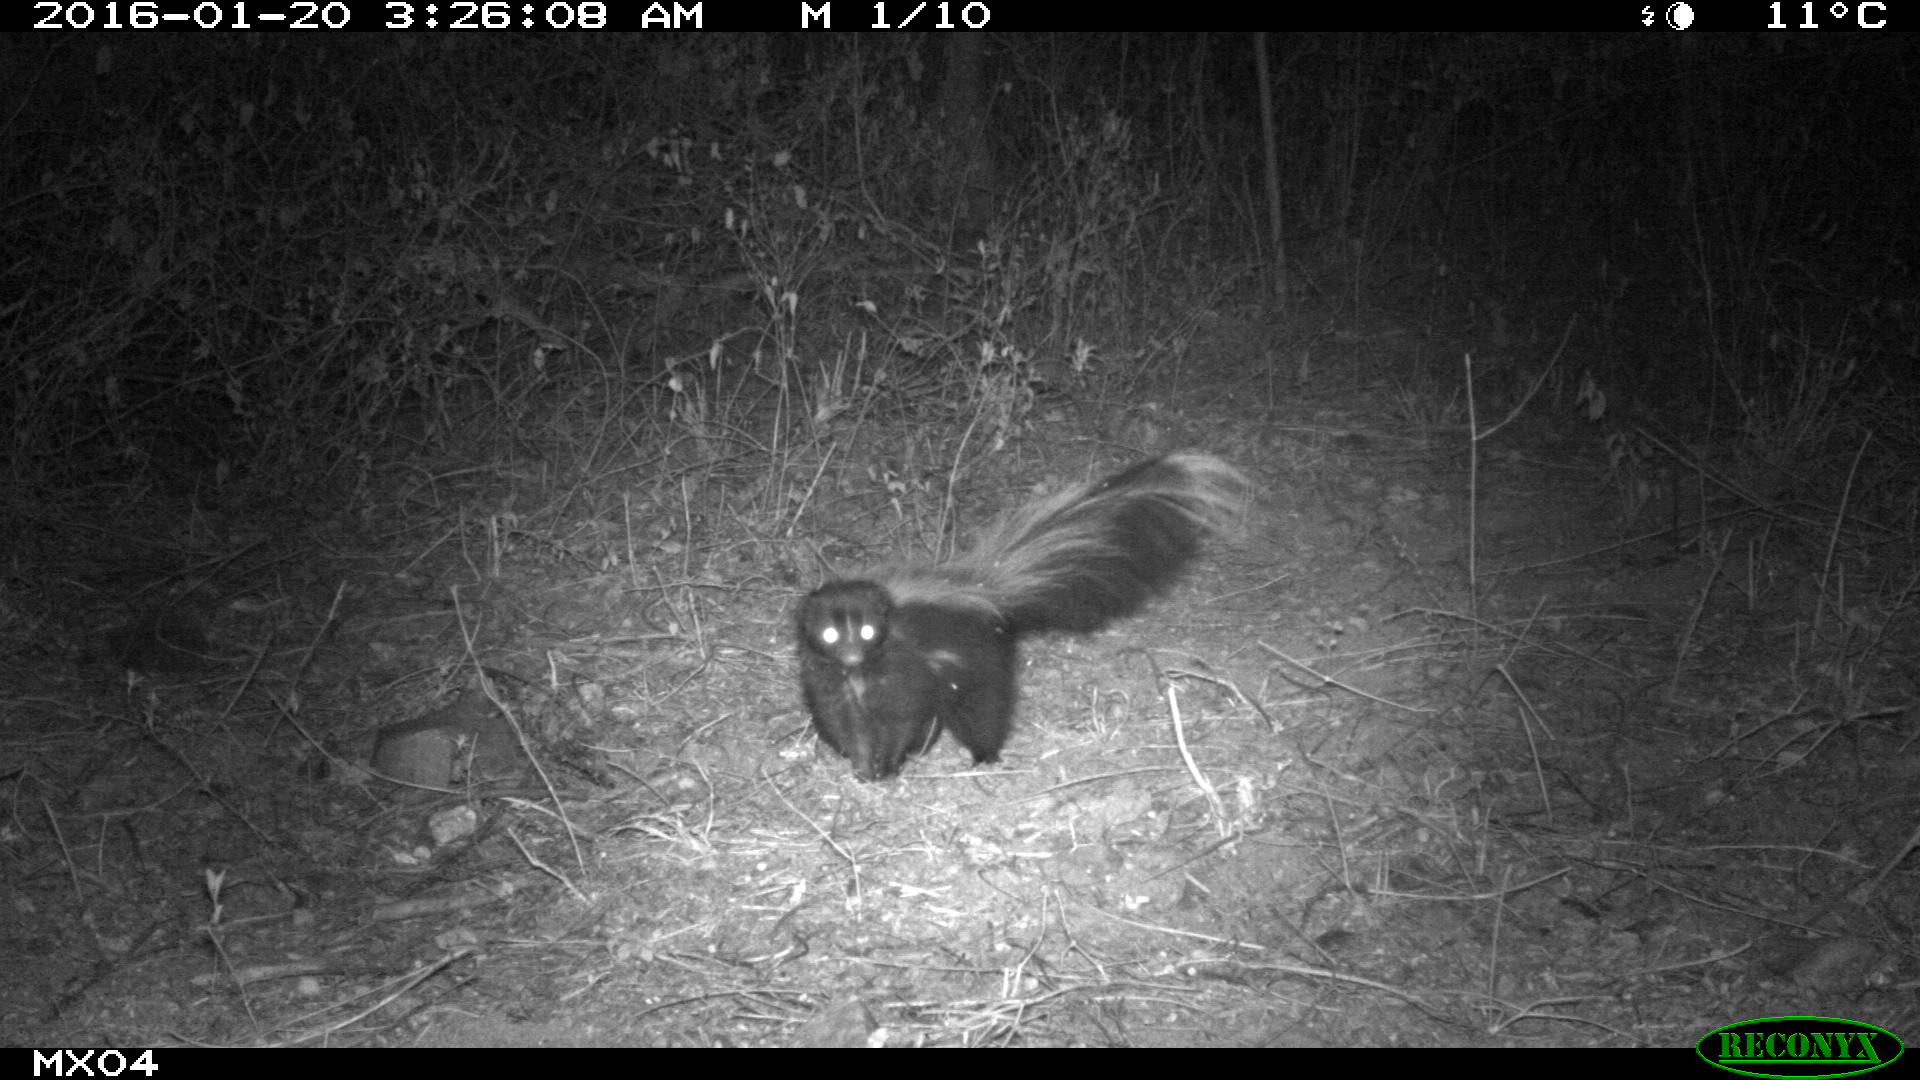 hooded skunk Camera Trap Photos from Mexico